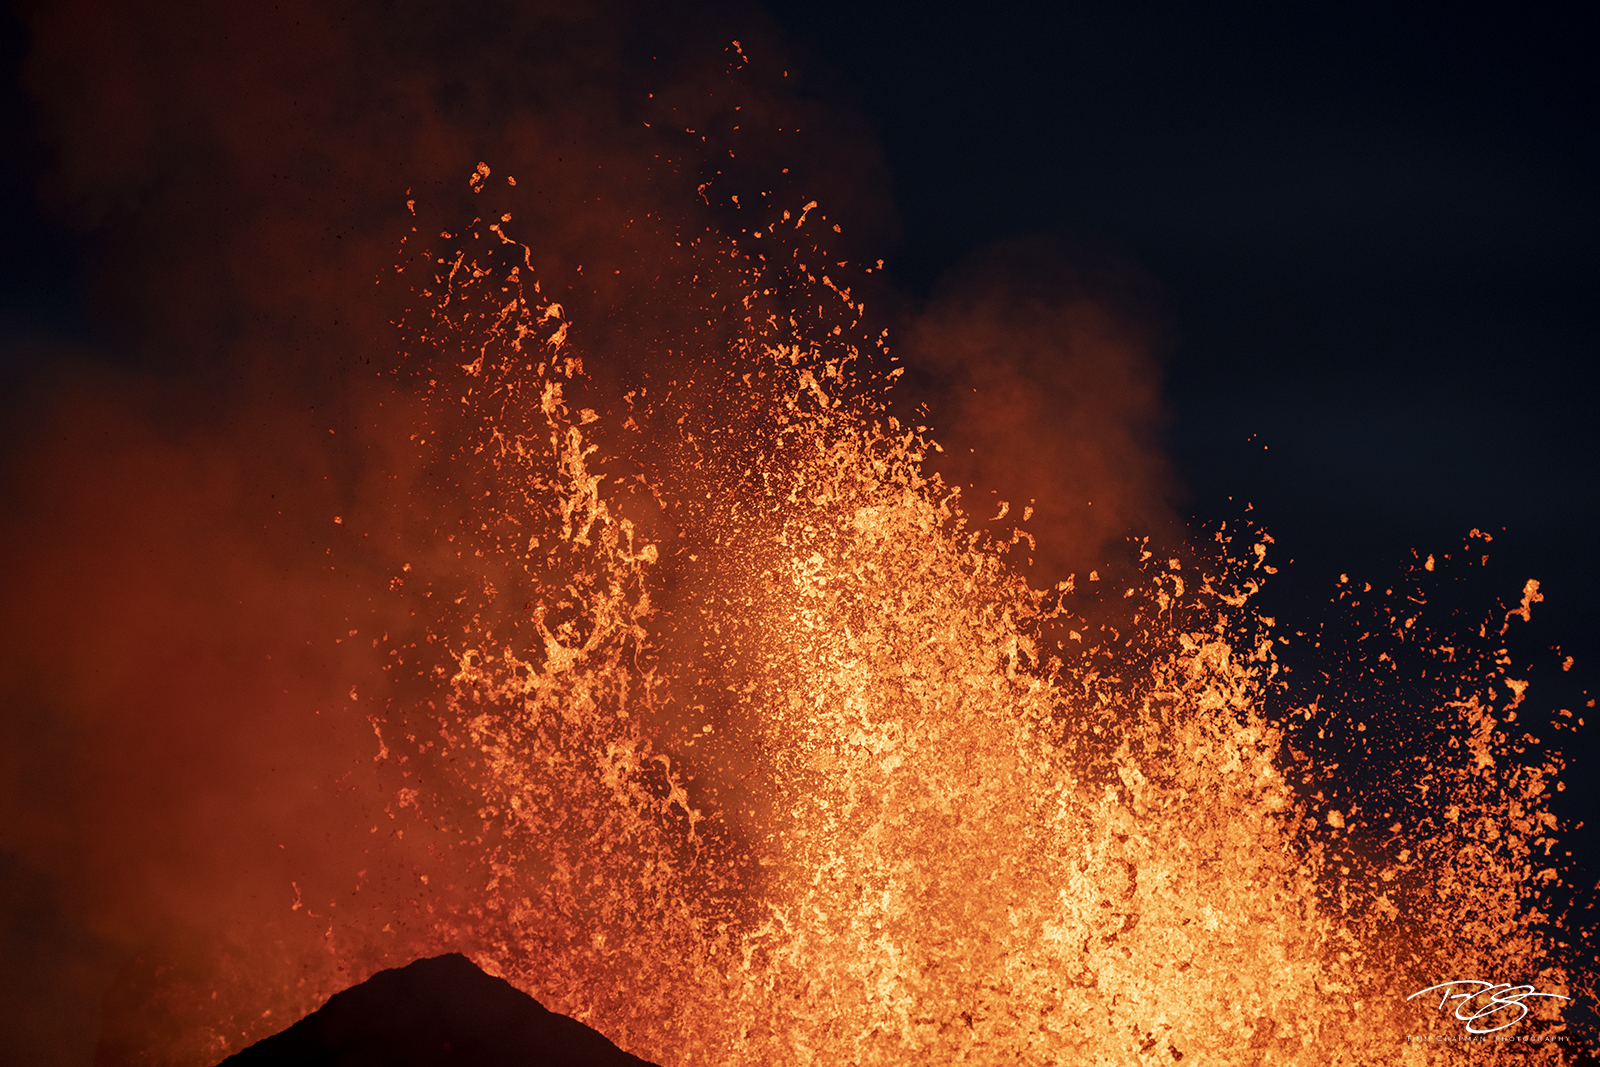 Closeup of fountaining lava during a volcanic eruption